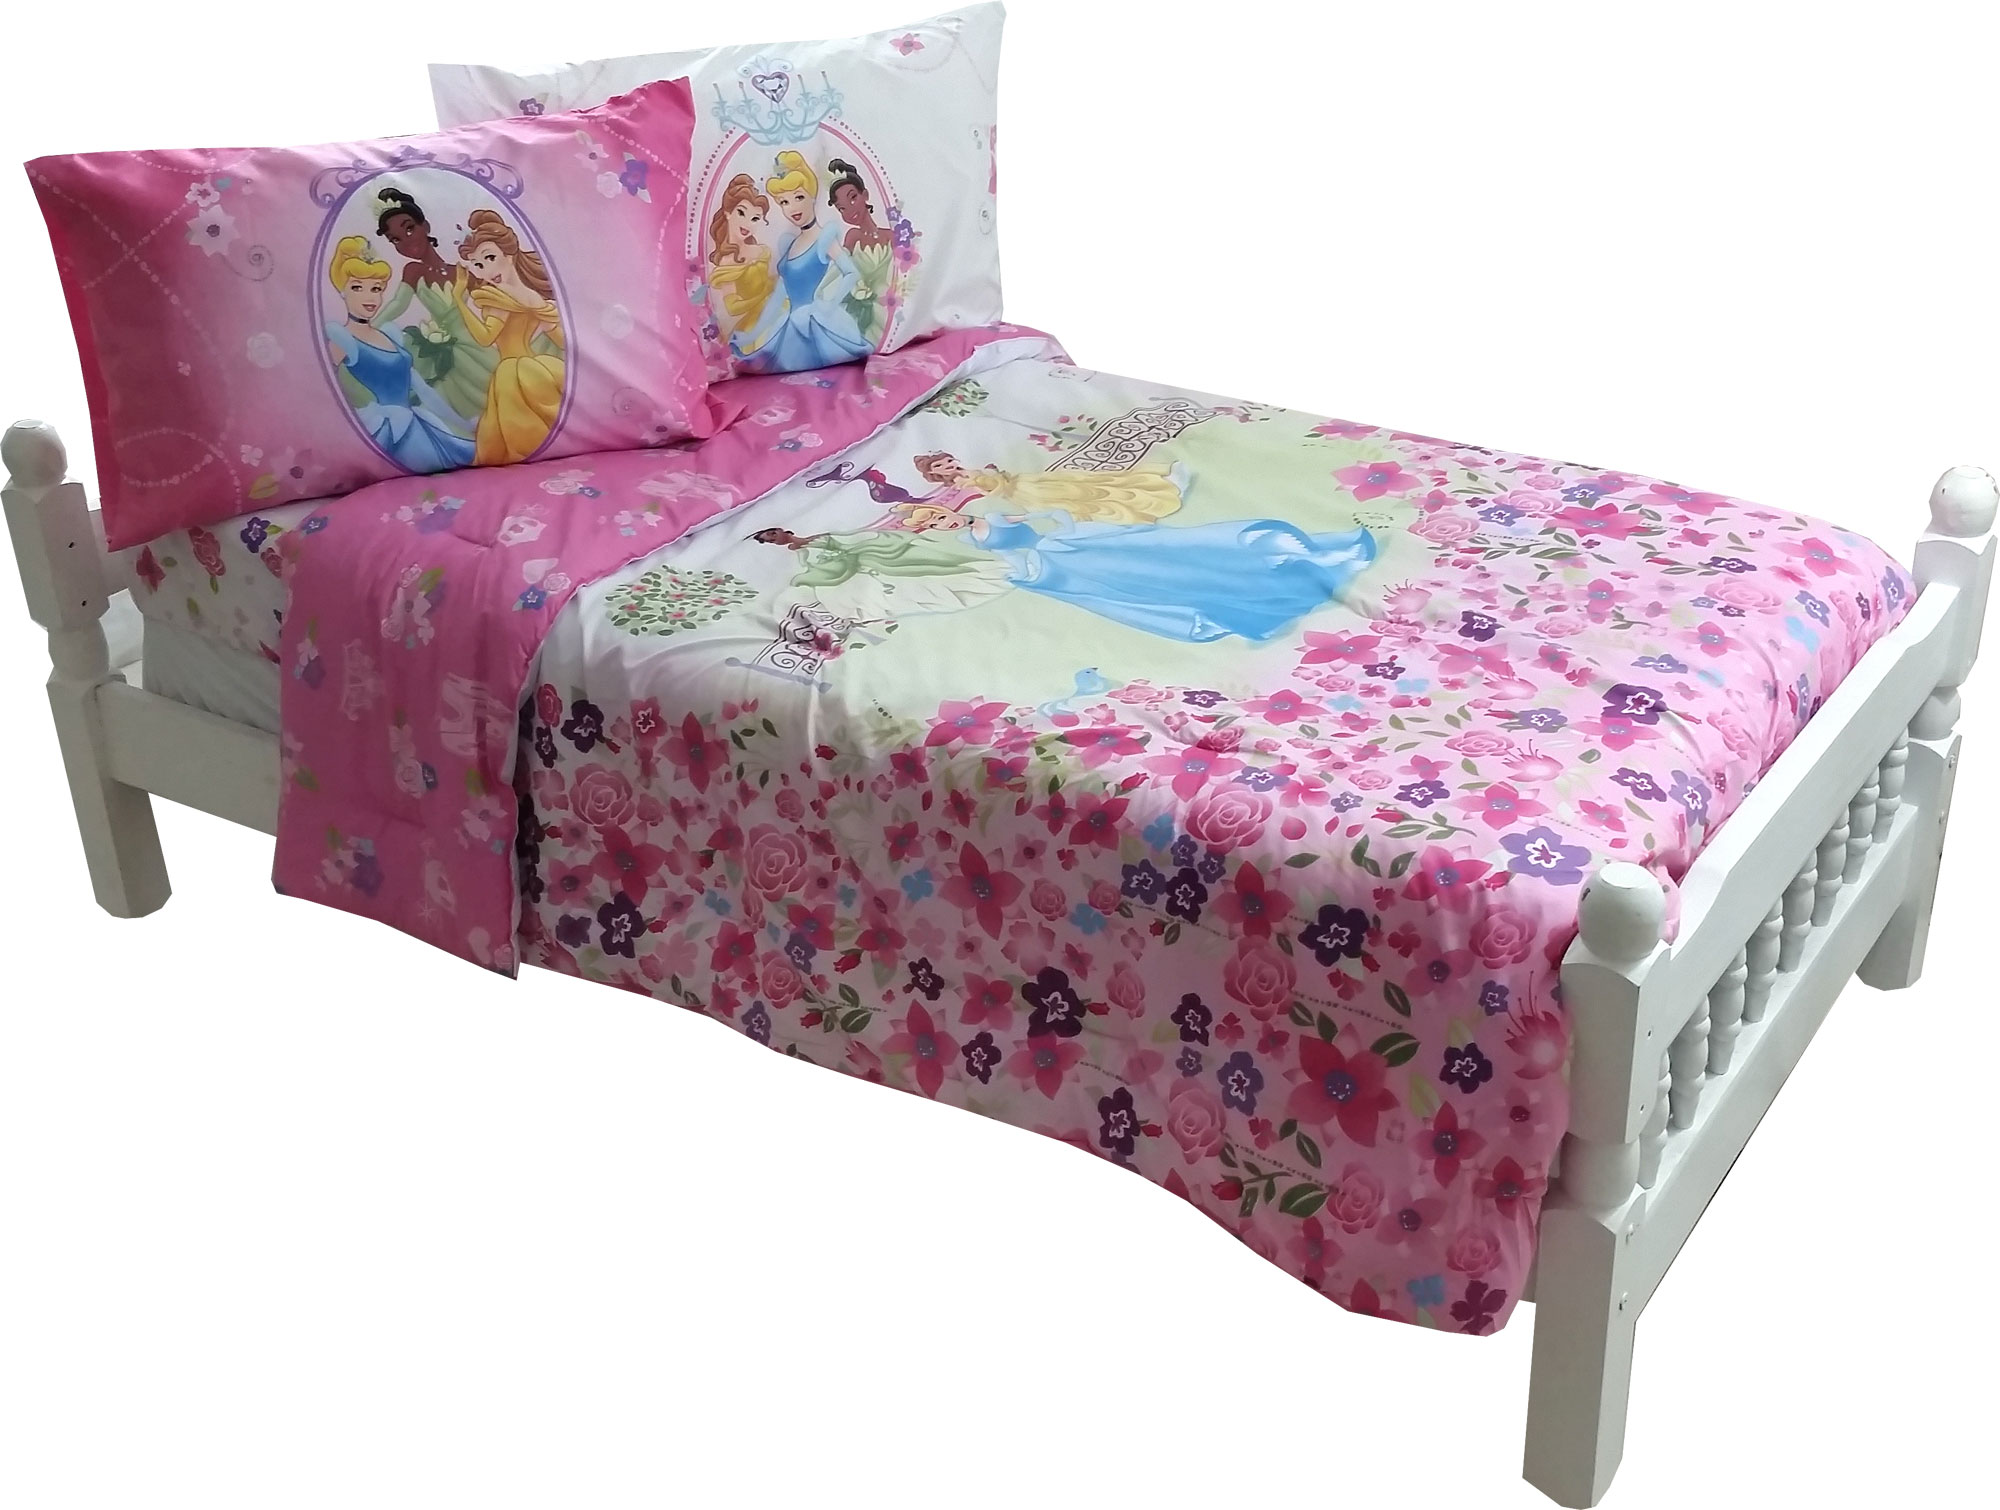 Disney Princess Full Bed Comforter